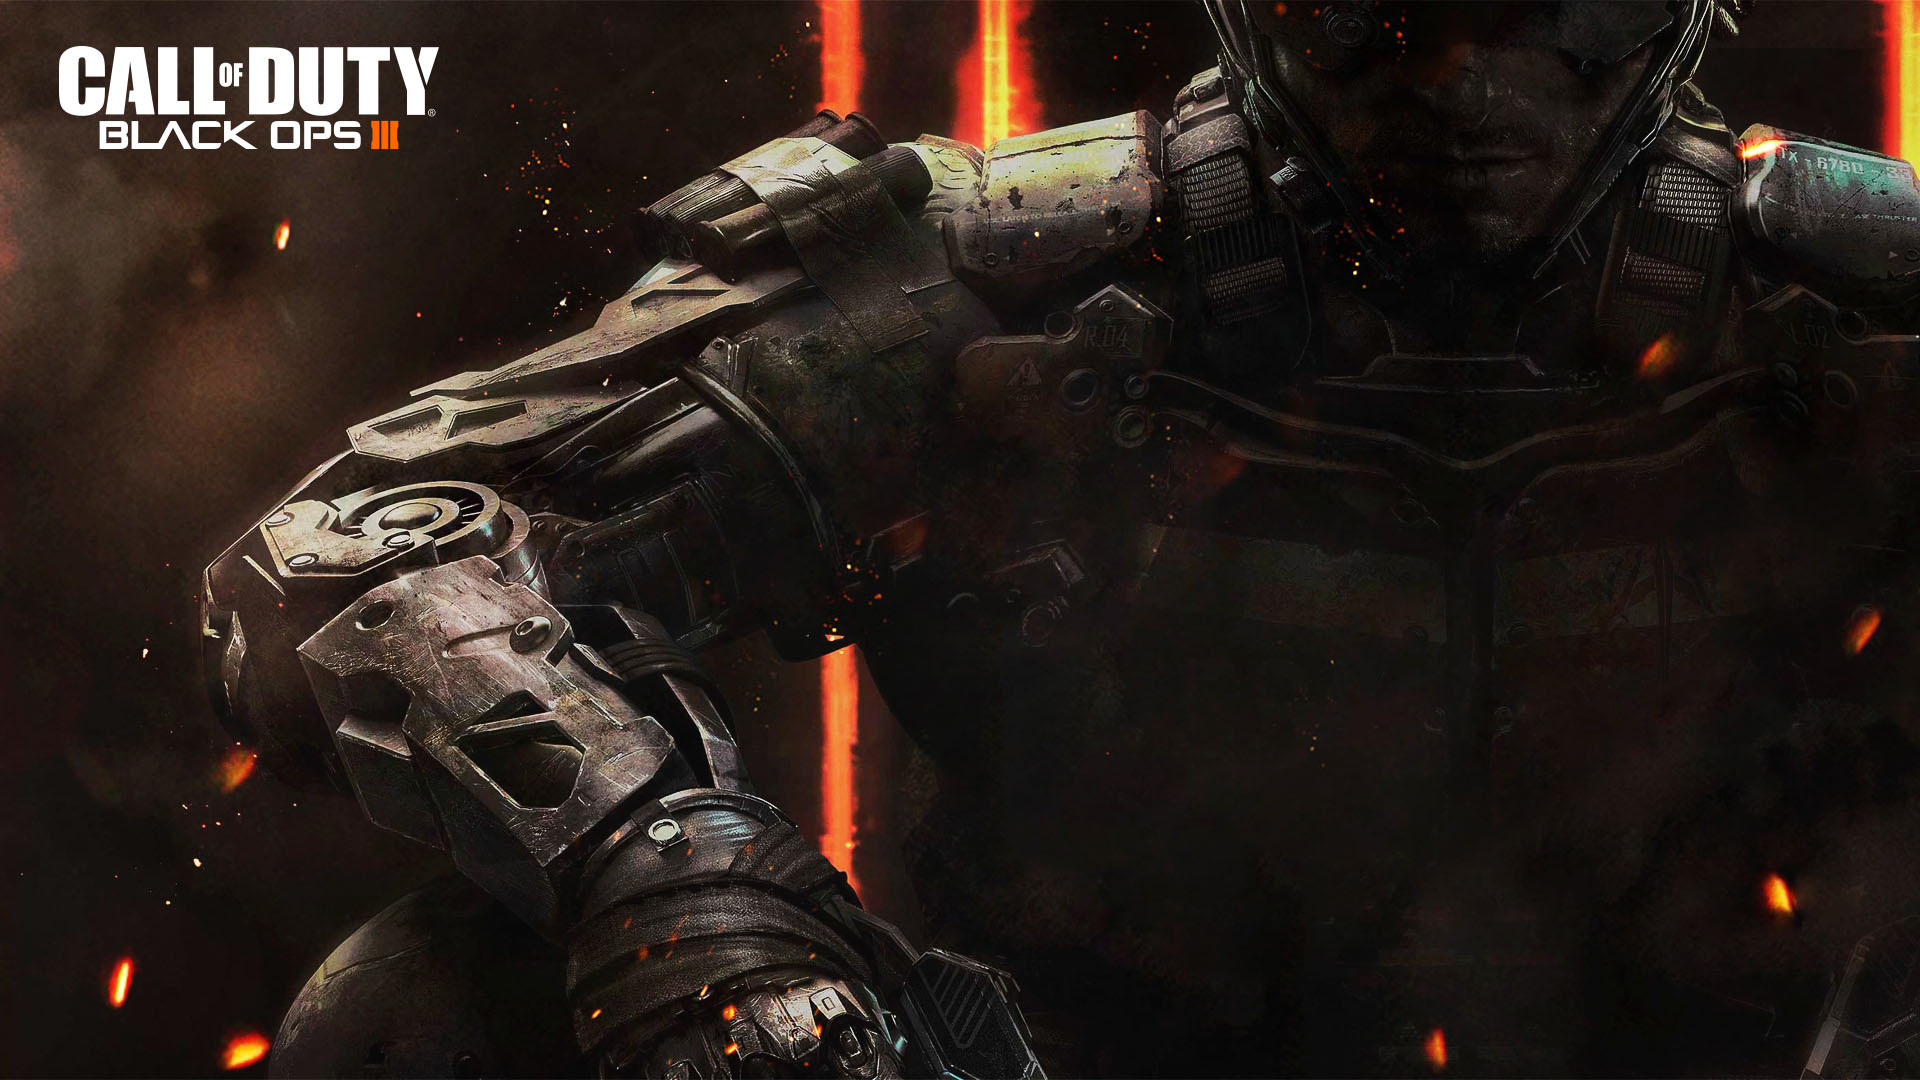 Call Of Duty Black Ops 3 Wallpapers High Quality Download Free